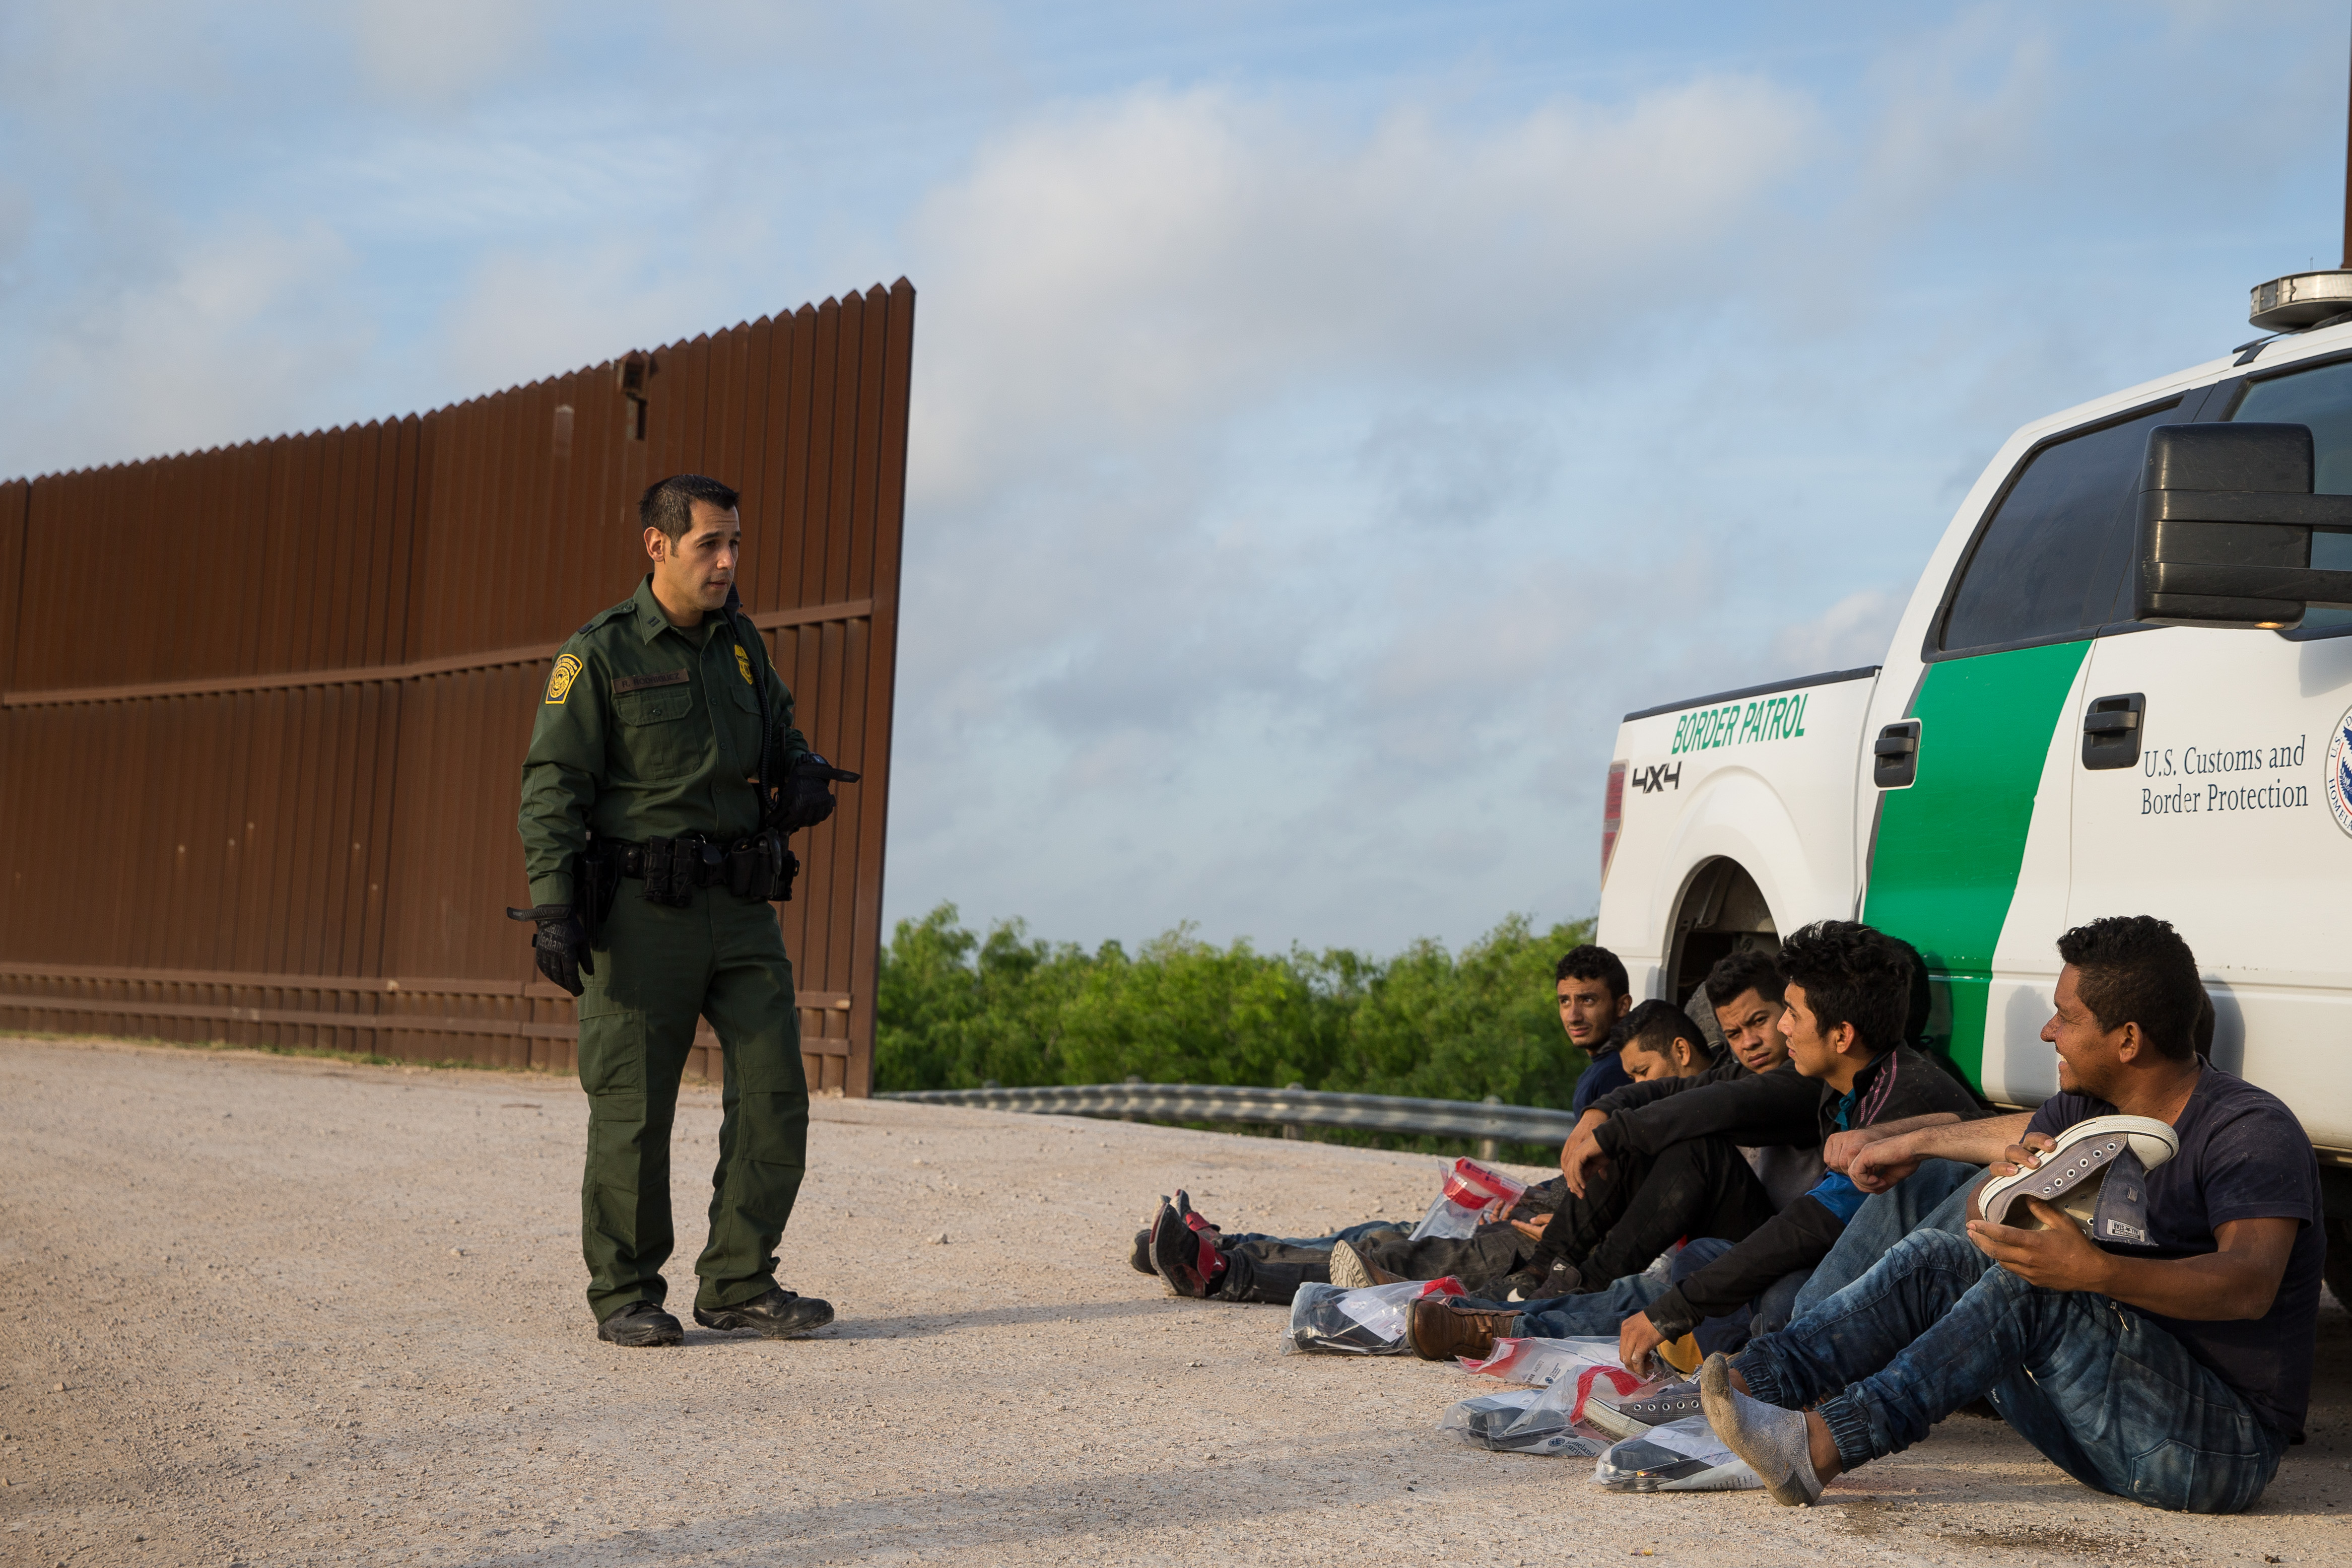 A Border Patrol agent apprehends illegal immigrants shortly after they crossed the border from Mexico into the United States on Monday, March 26, 2018. (Photo credit should read LOREN ELLIOTT/AFP/Getty Images)